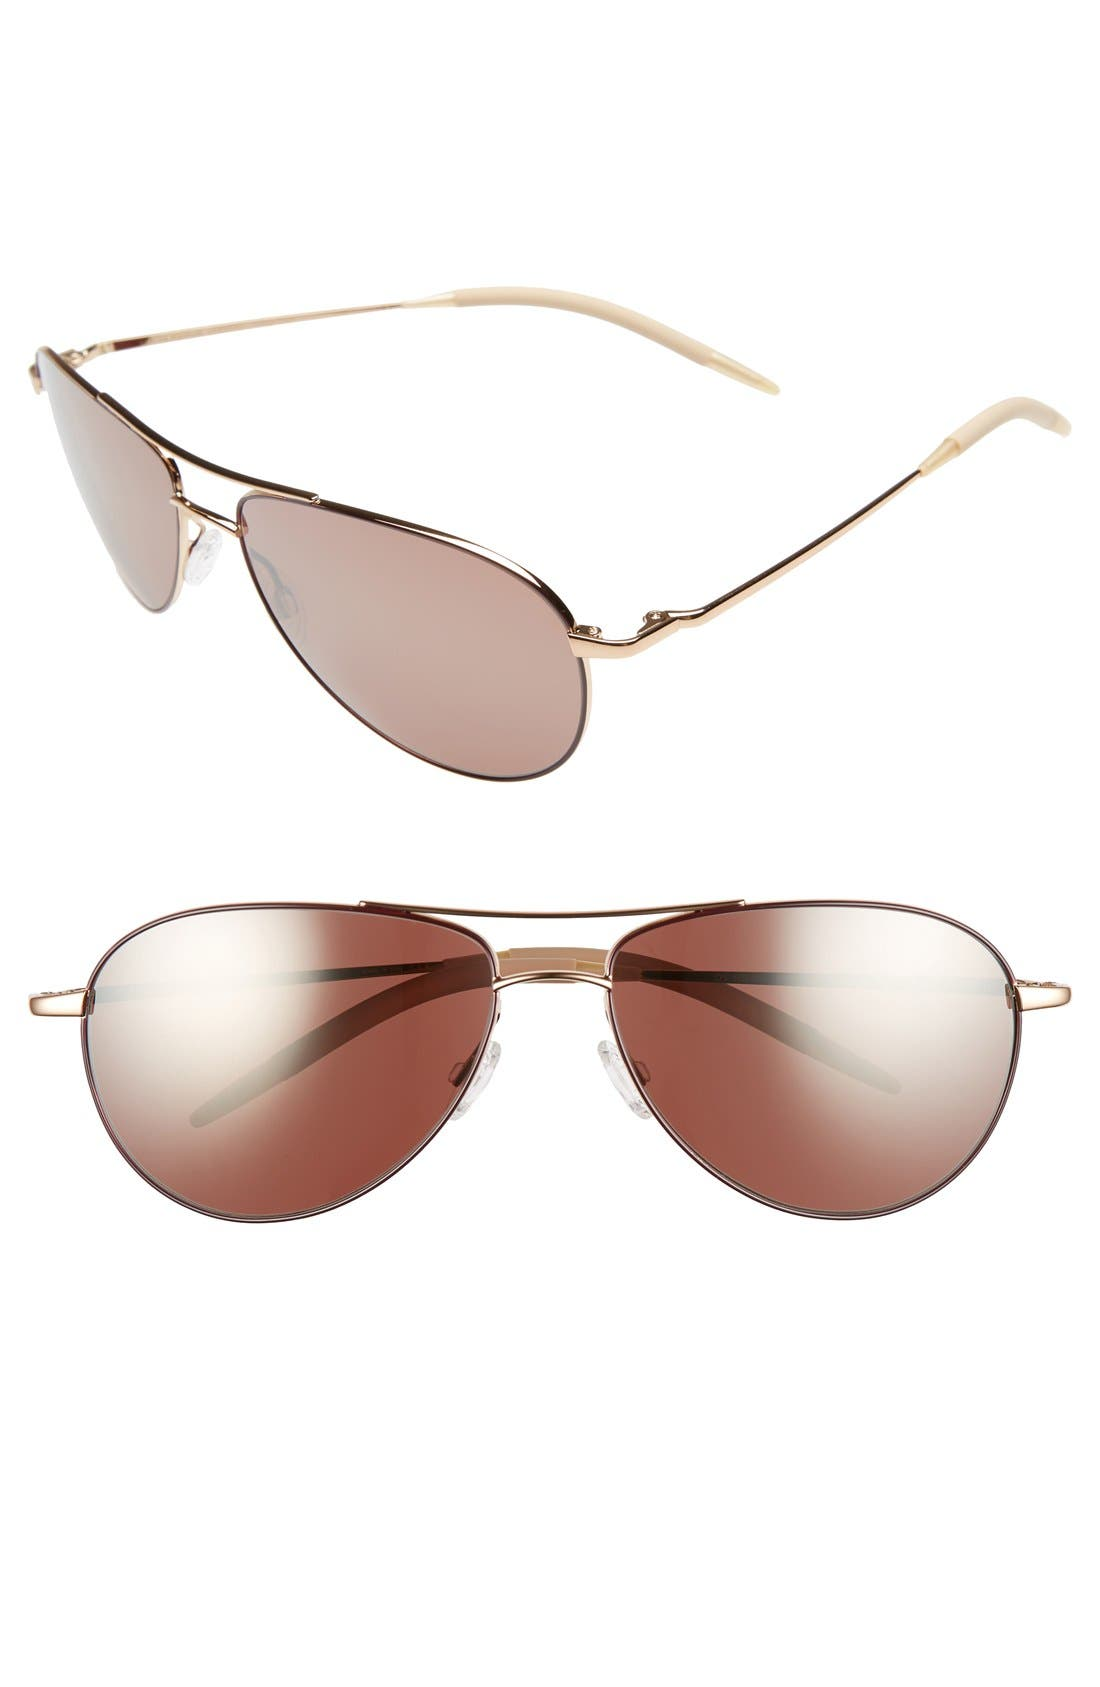 Main Image - Oliver Peoples 'Benedict' 59mm Aviator Sunglasses